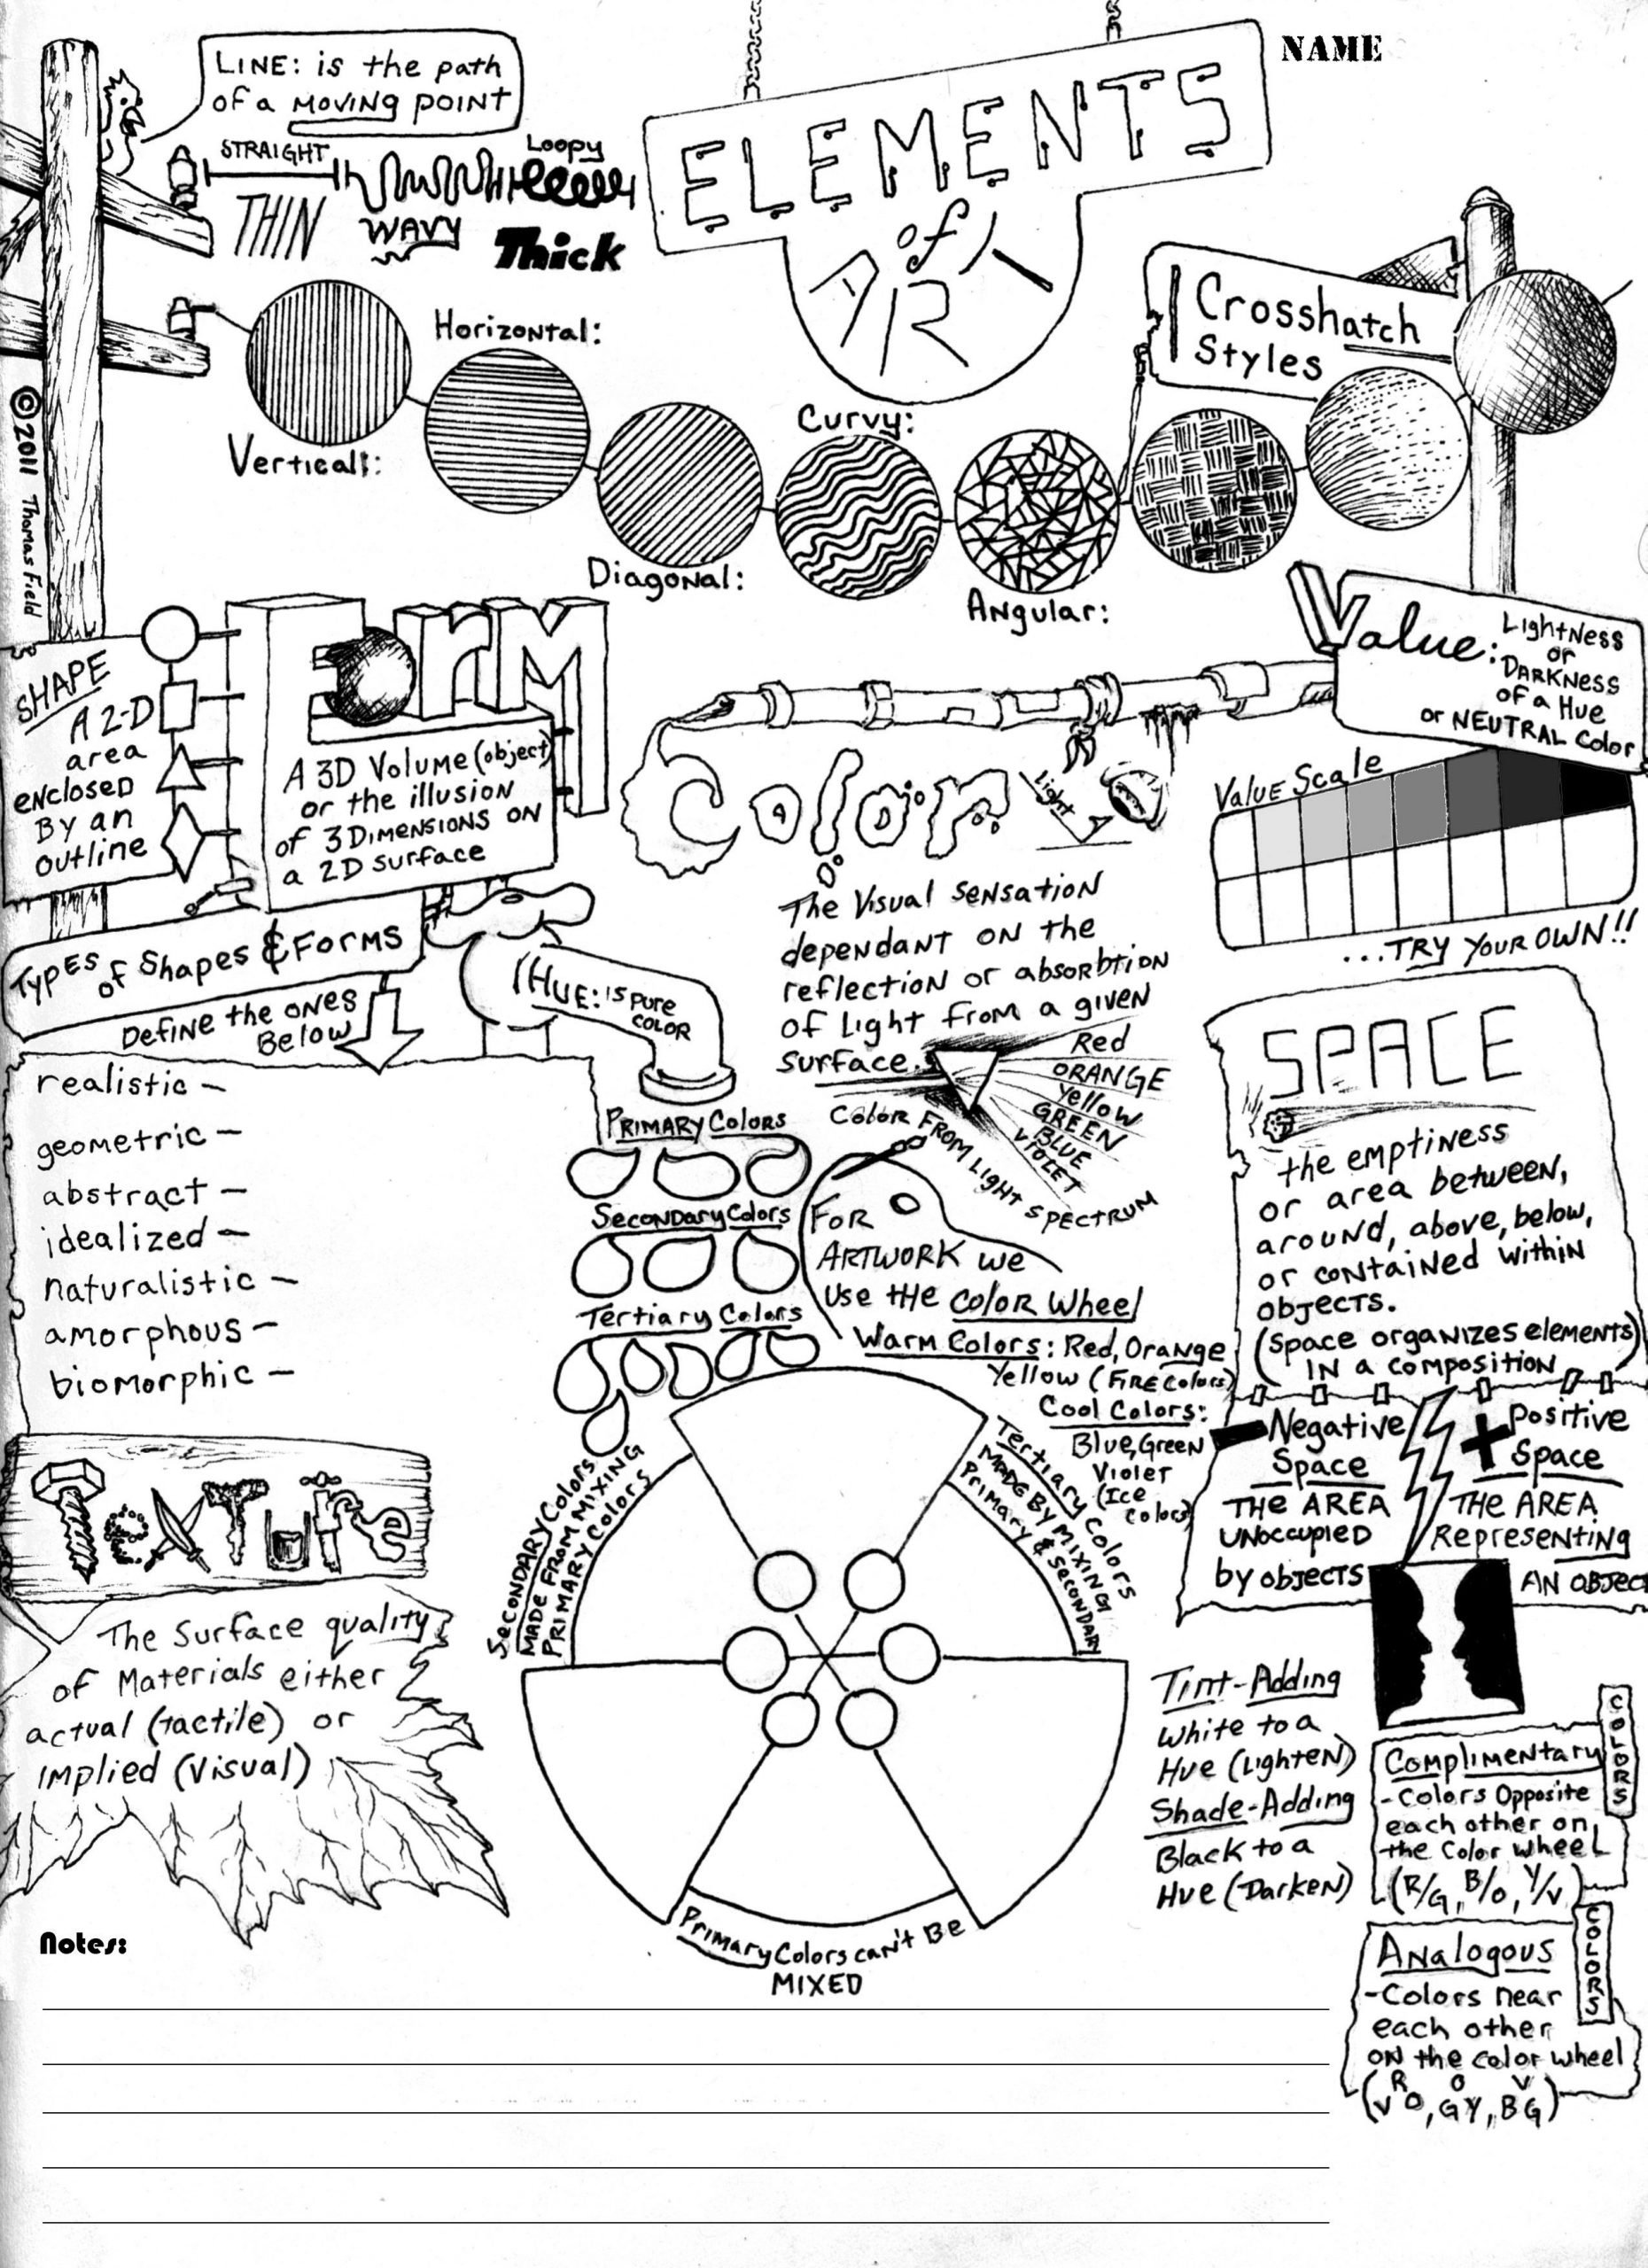 Middle School Art Worksheets Wksht Elementsofart002 2550—3509